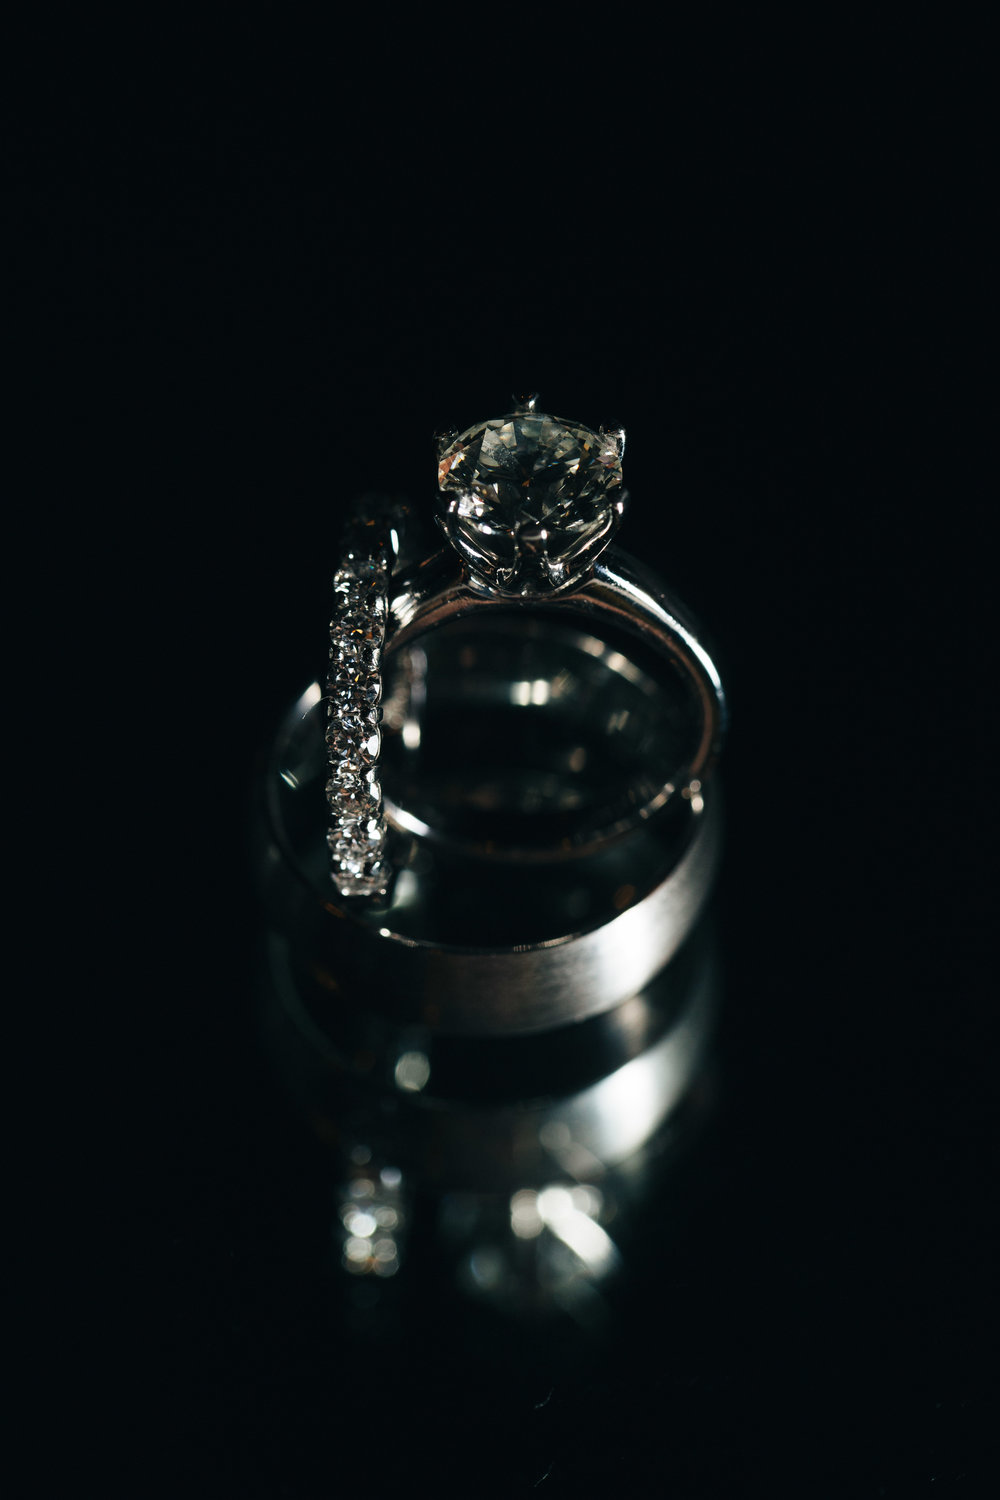 Wedding photography of diamond wedding ring.